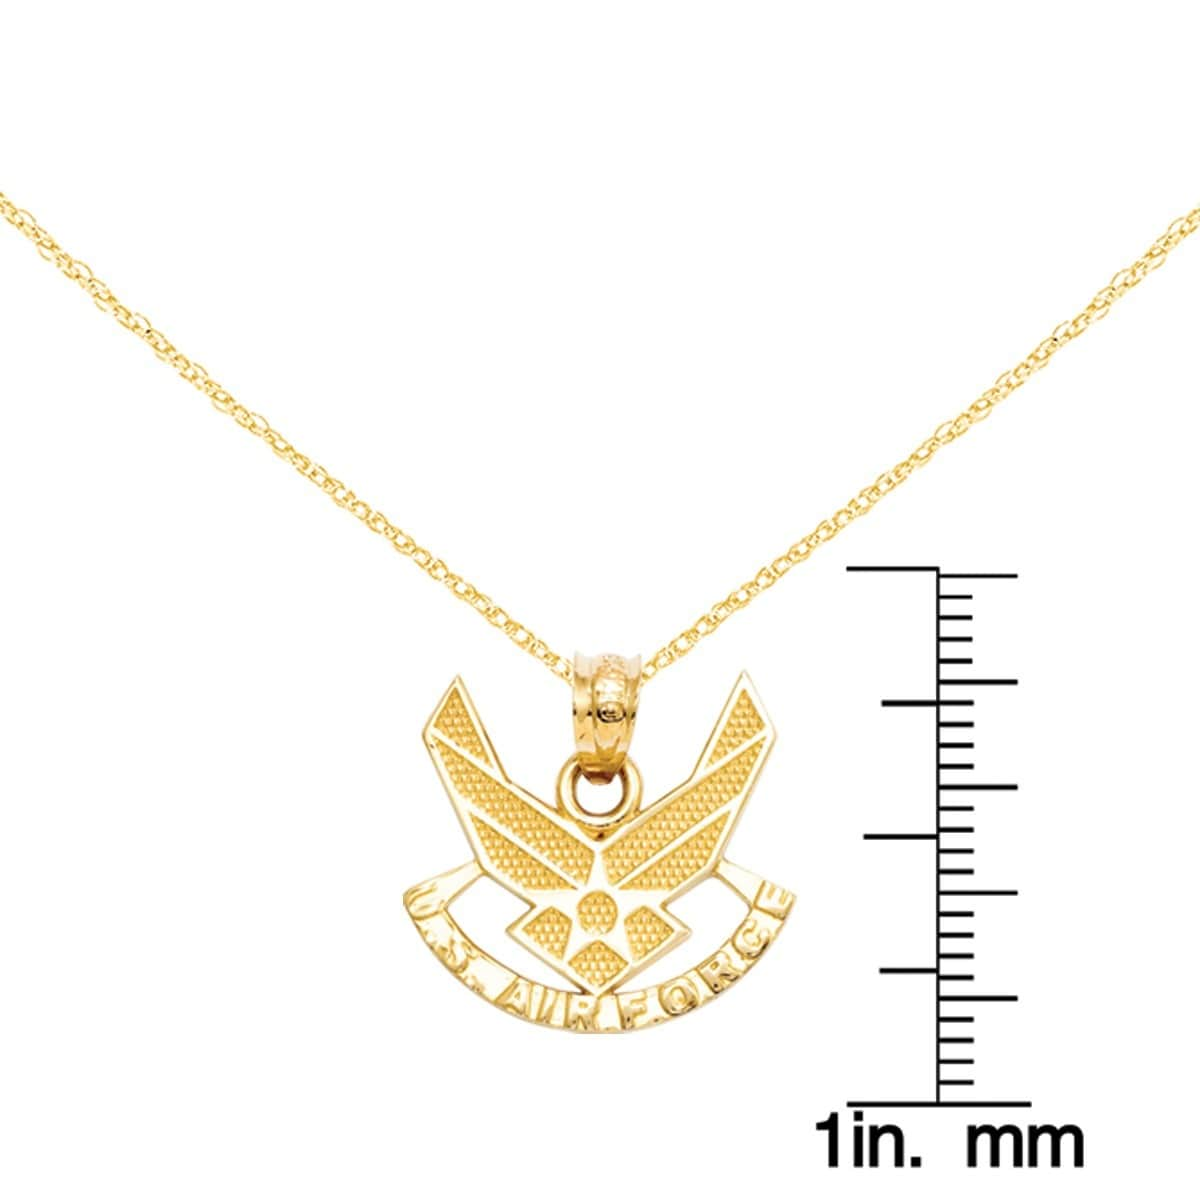 Shop versil 14k yellow gold us air force pendant with 18 inch gold shop versil 14k yellow gold us air force pendant with 18 inch gold cable chain on sale free shipping today overstock 14678778 aloadofball Choice Image